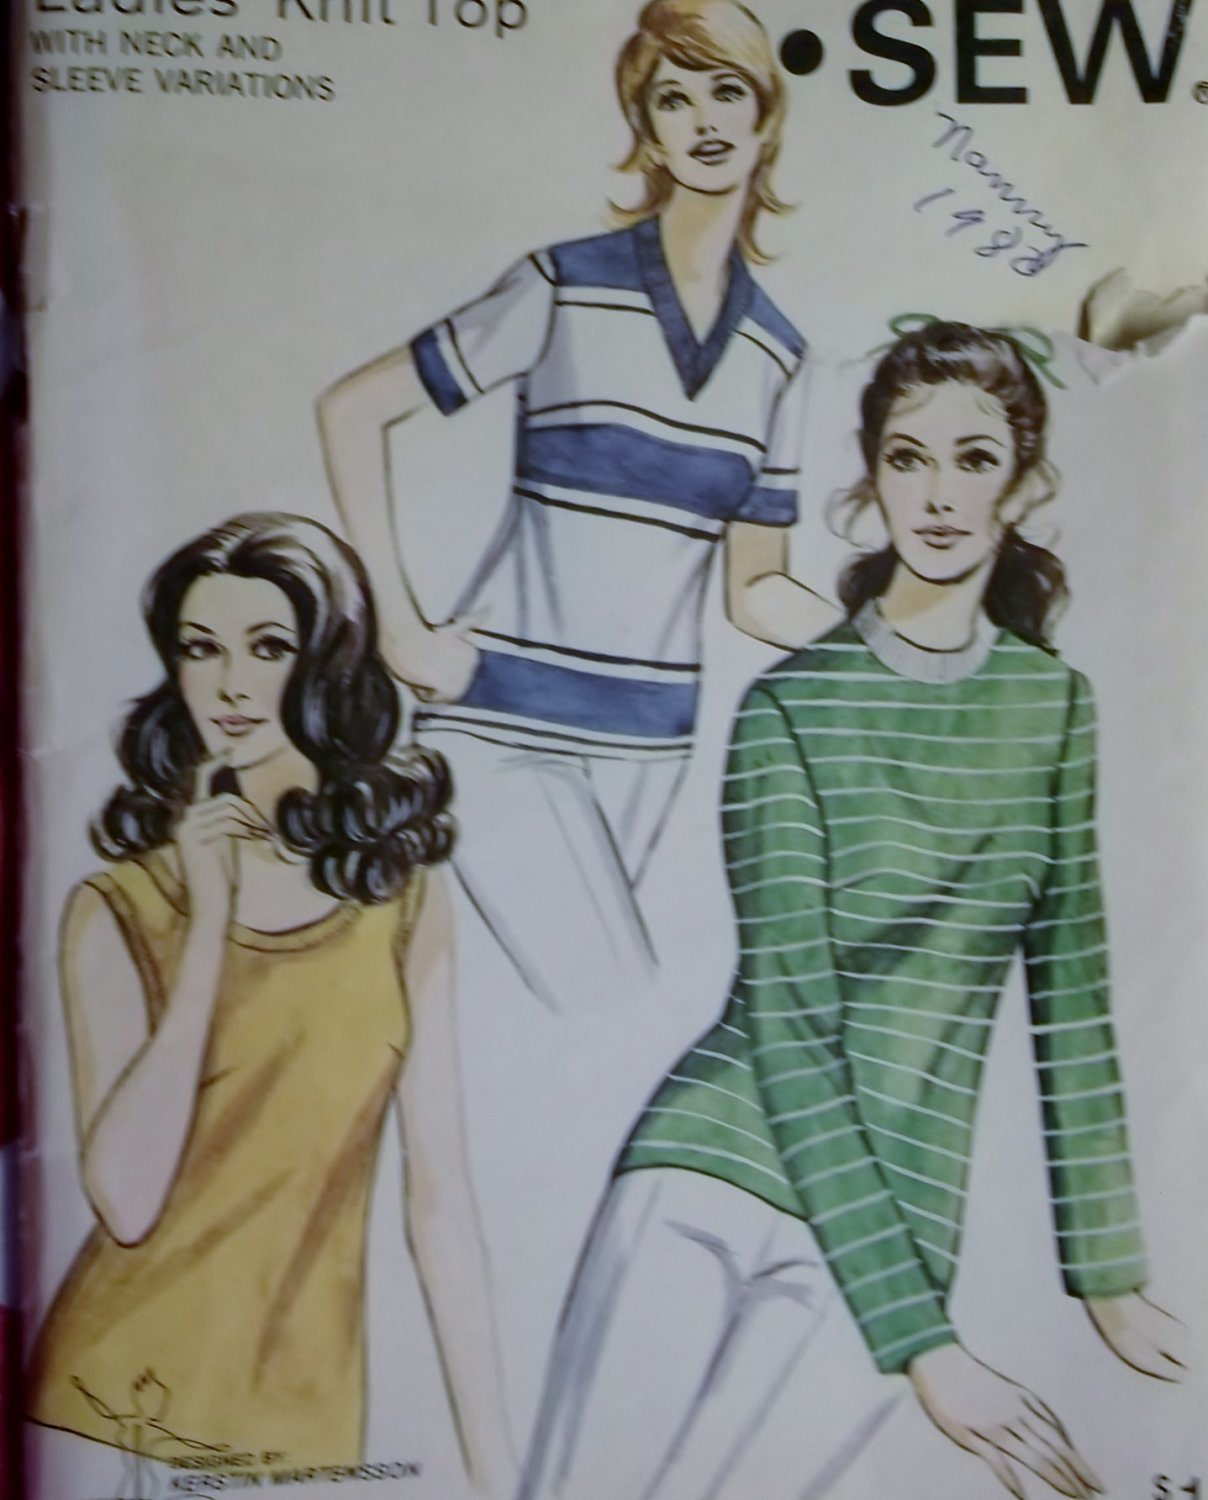 Kwik Sew 304 Misses Knit Top Sewing Pattern, Plus size  14 16 18, Uncut